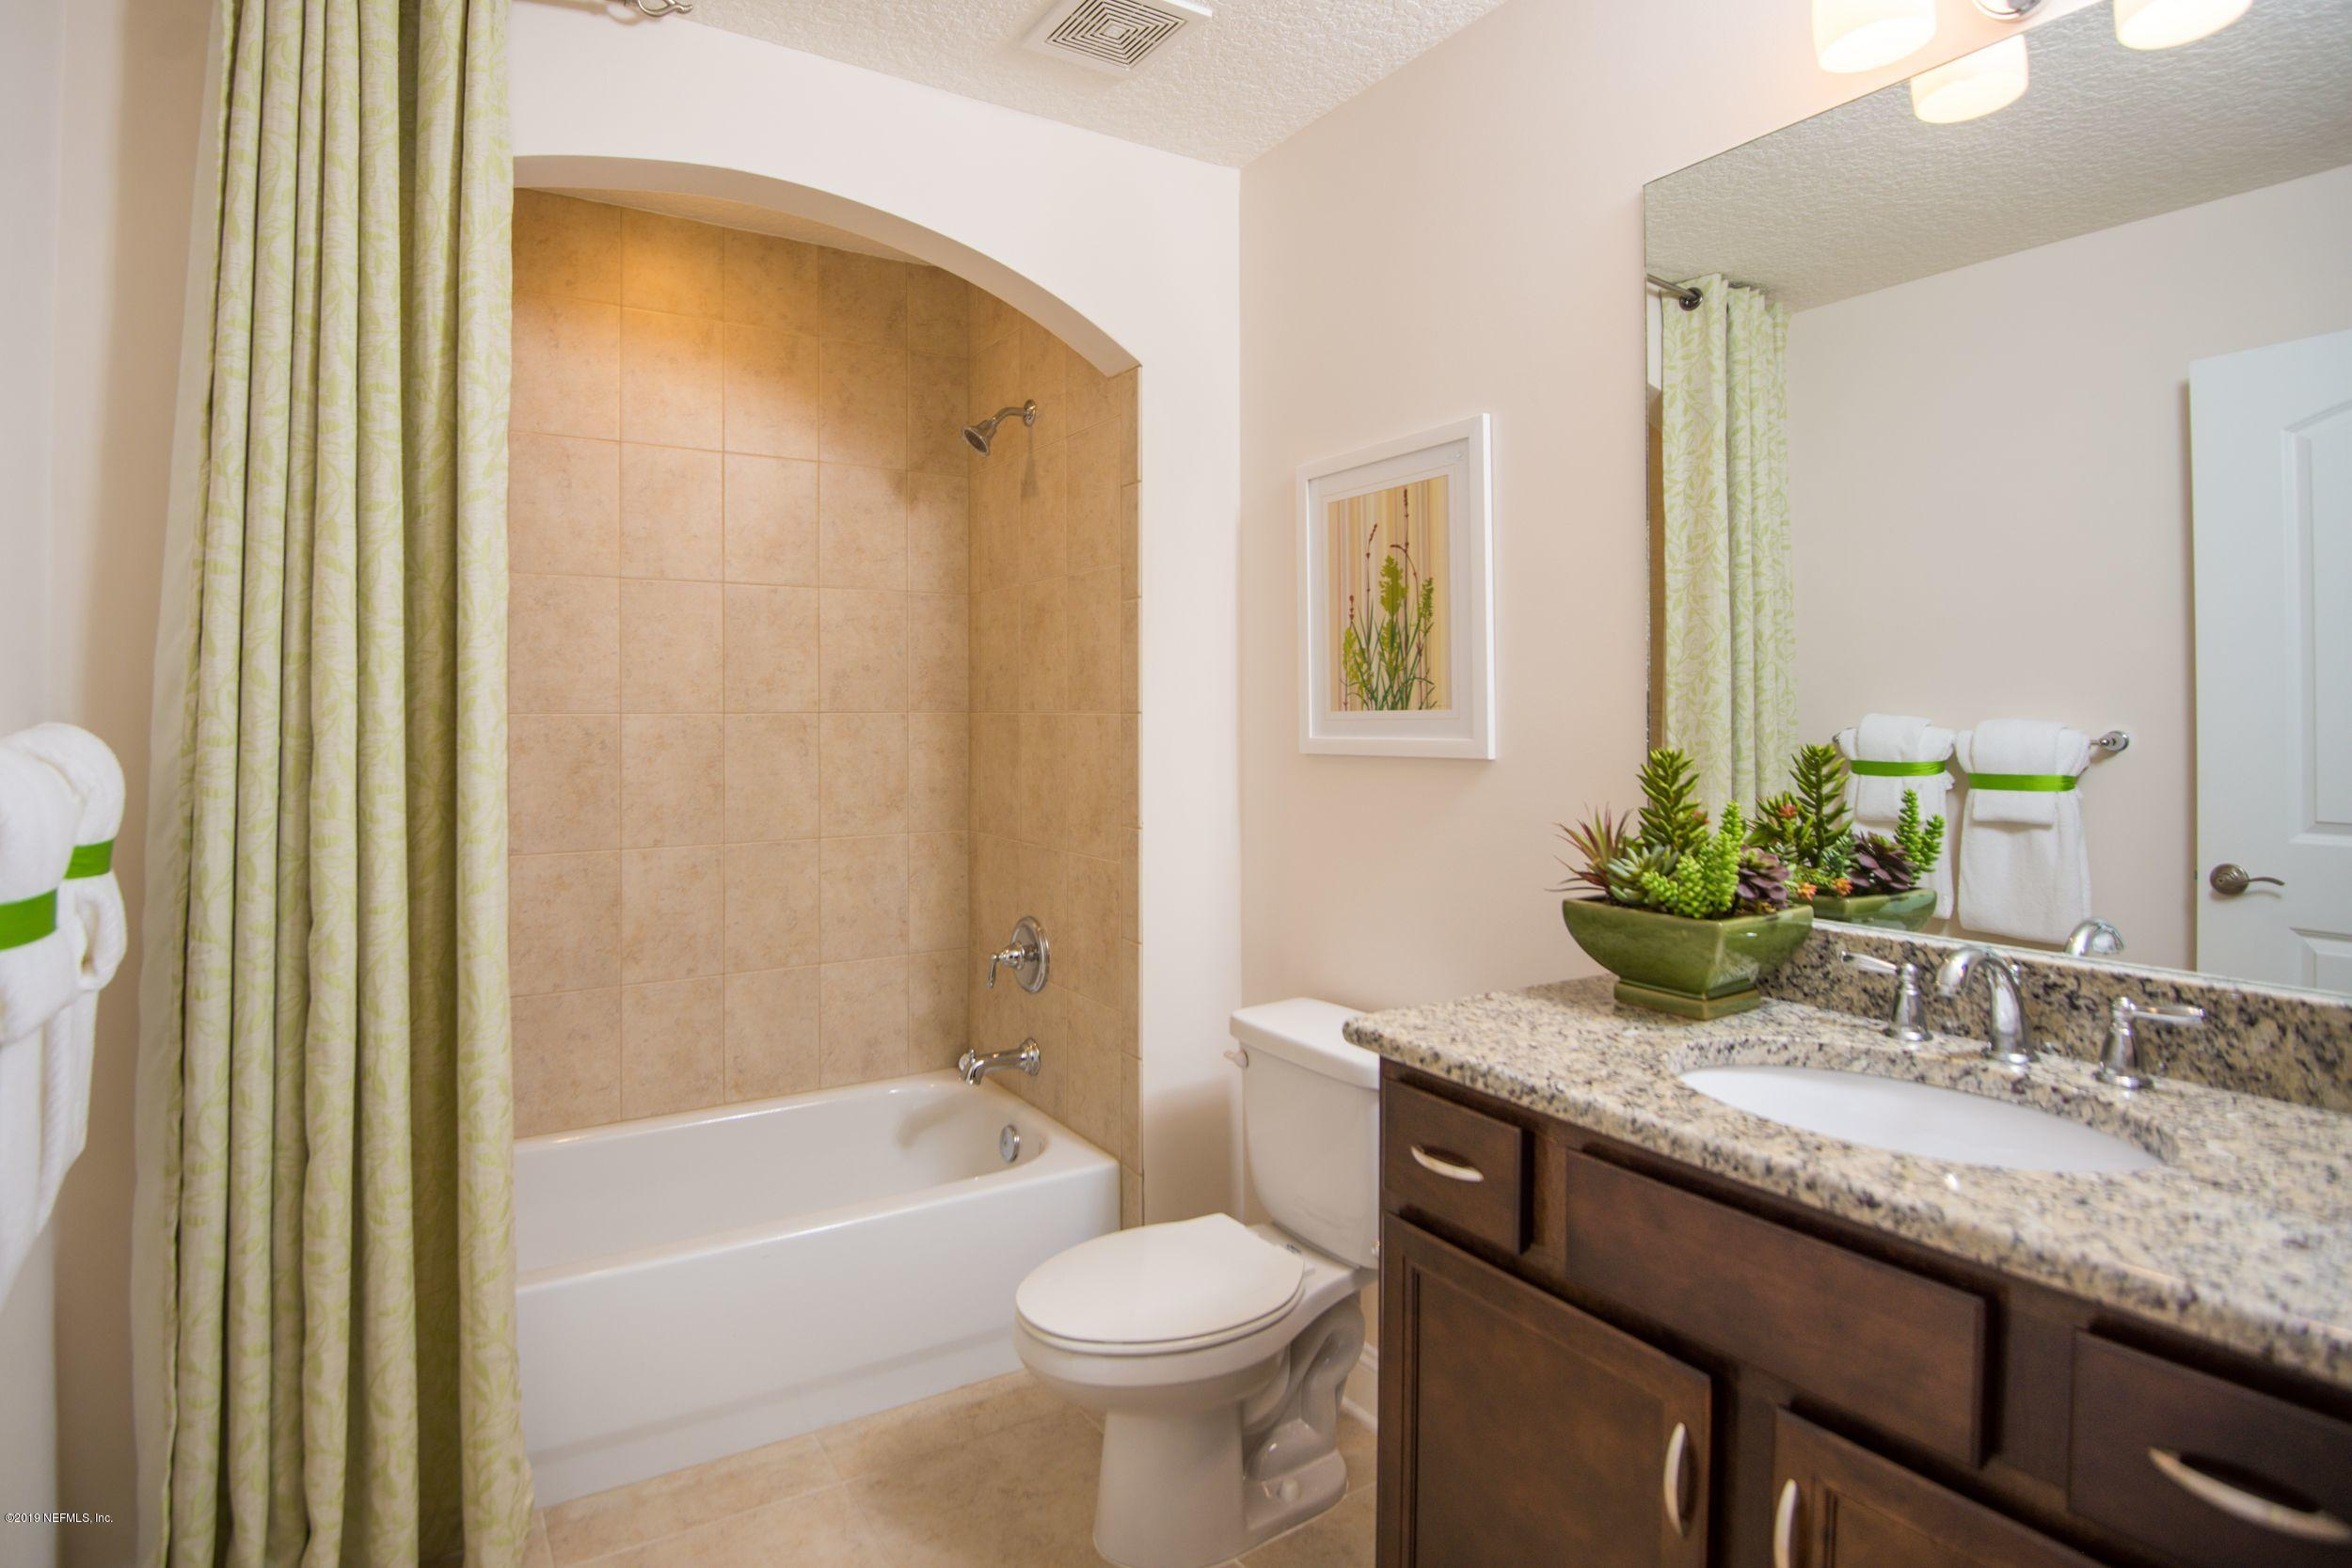 251 TIMOGA, ST AUGUSTINE, FLORIDA 32084, 2 Bedrooms Bedrooms, ,2 BathroomsBathrooms,Condo,For sale,TIMOGA,998953